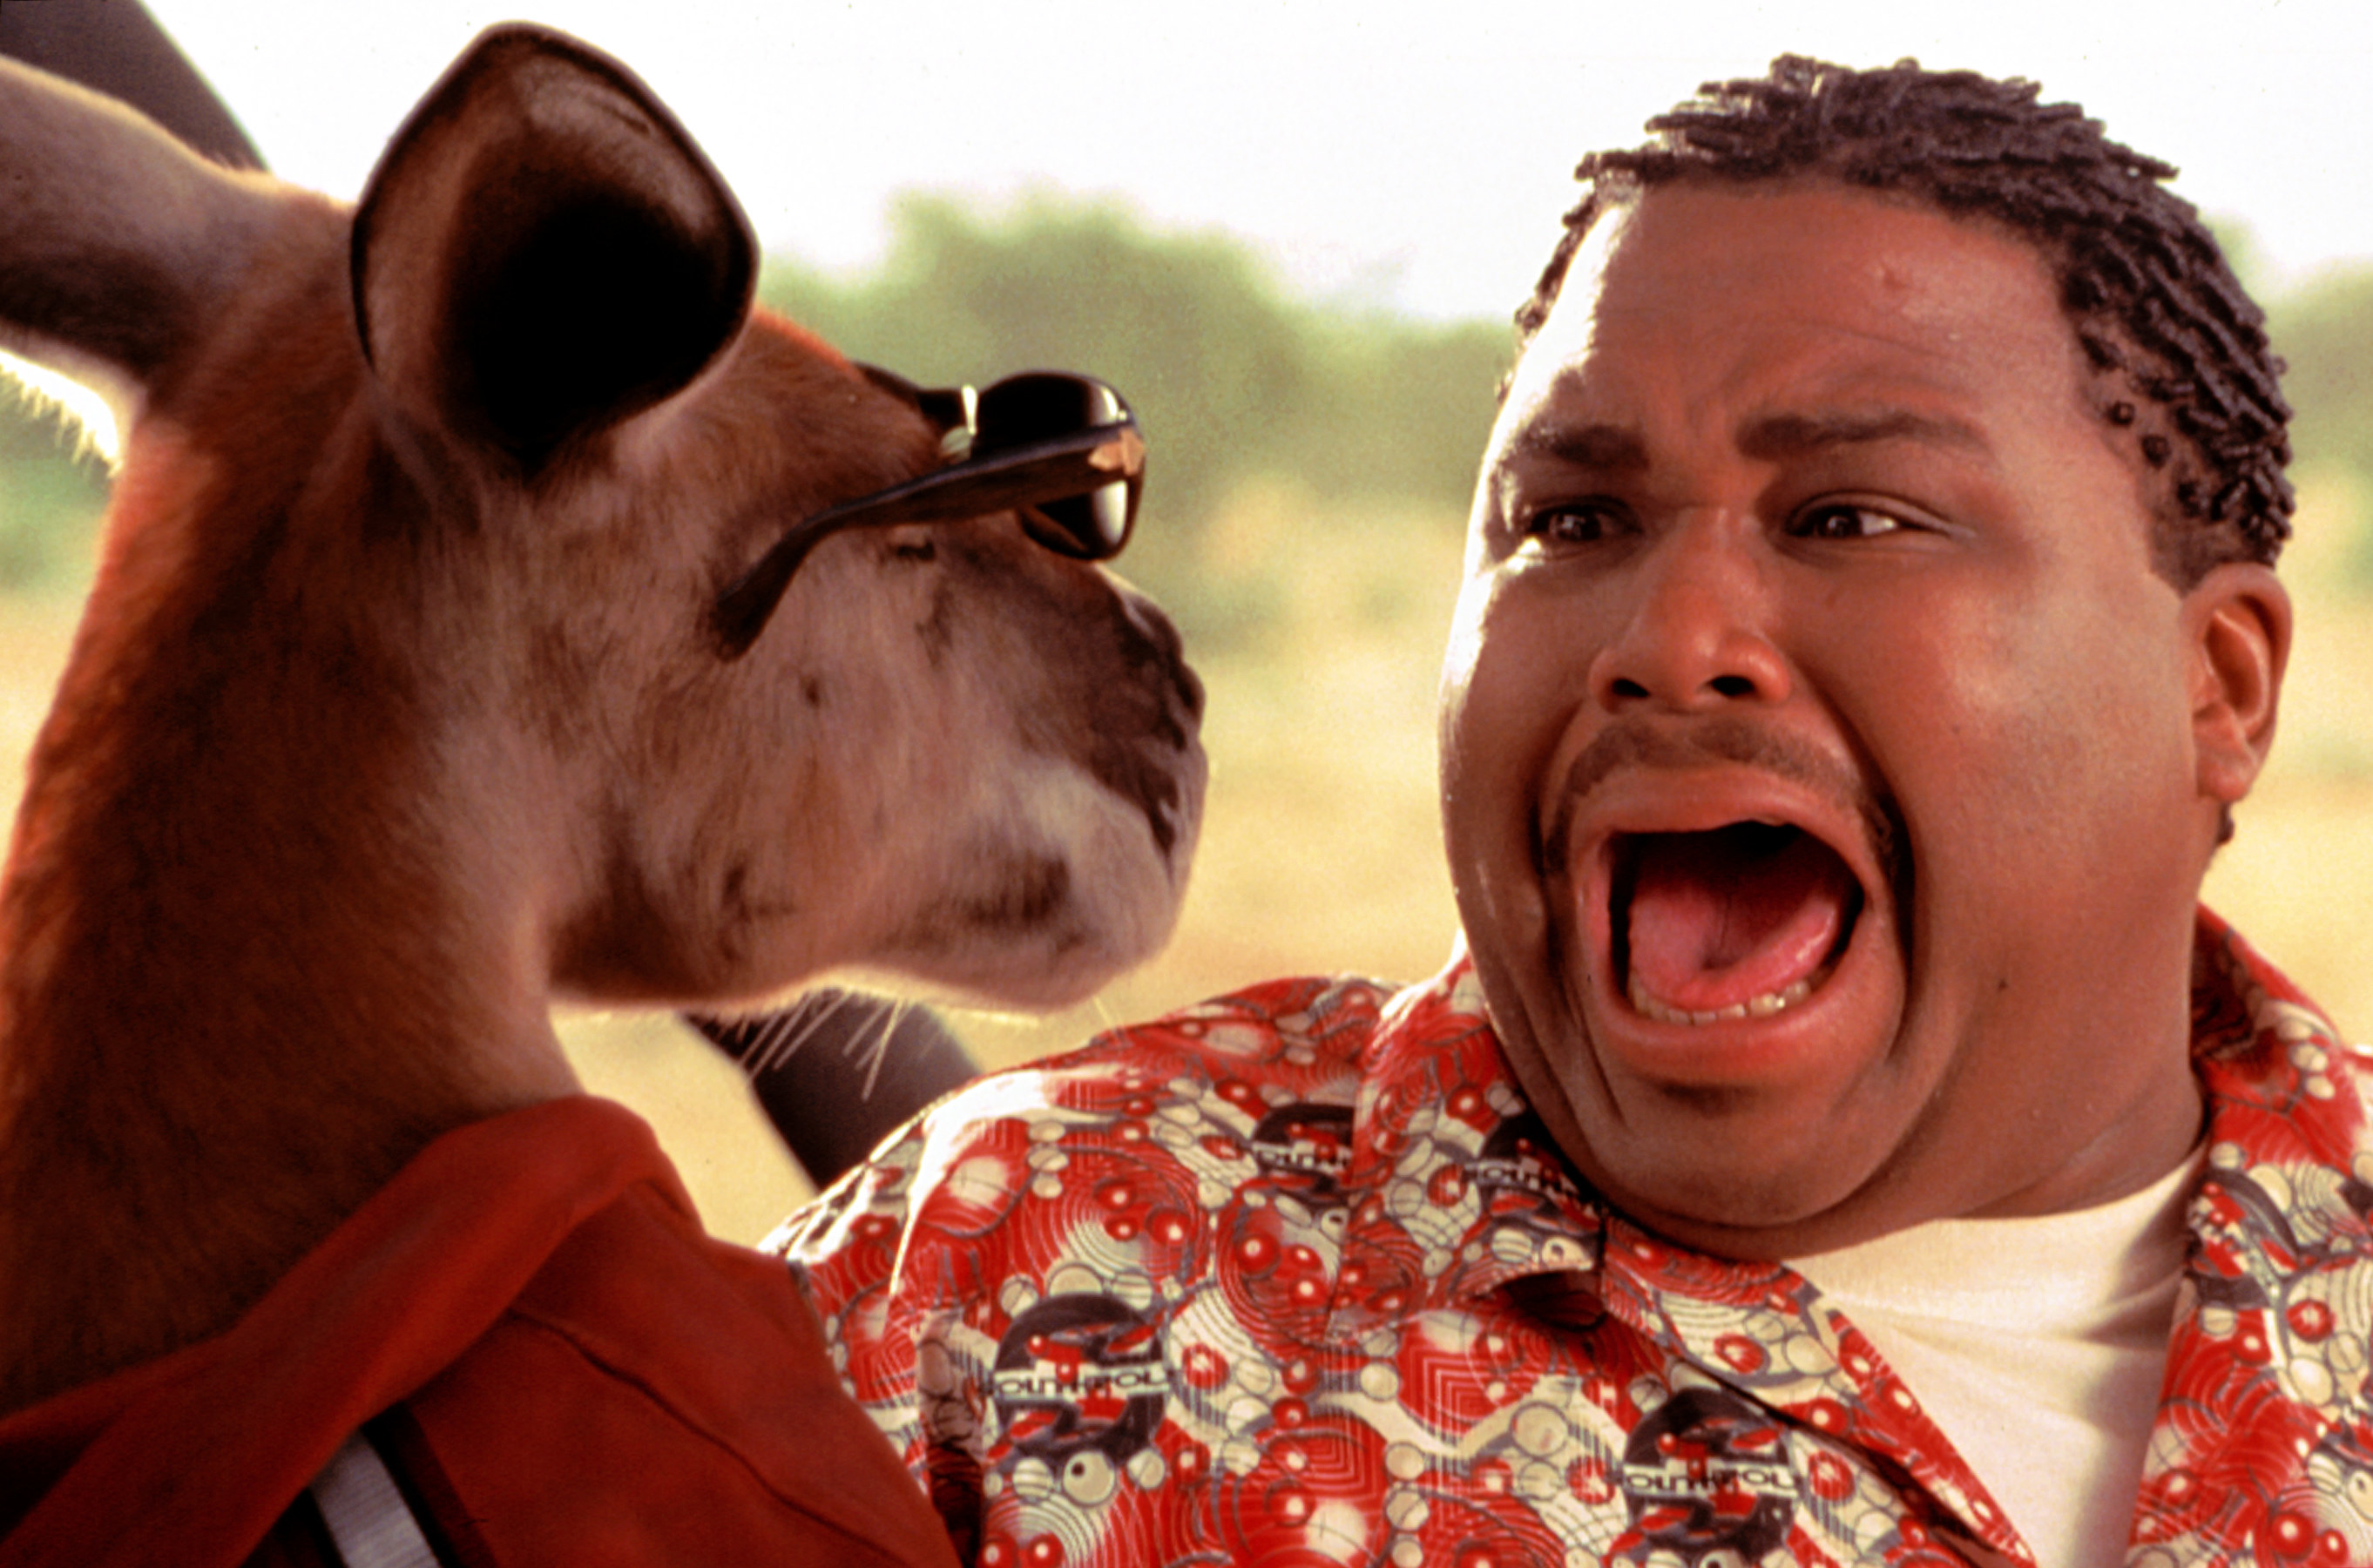 Anthony Anderson screaming when he sees Kangaroo Jack